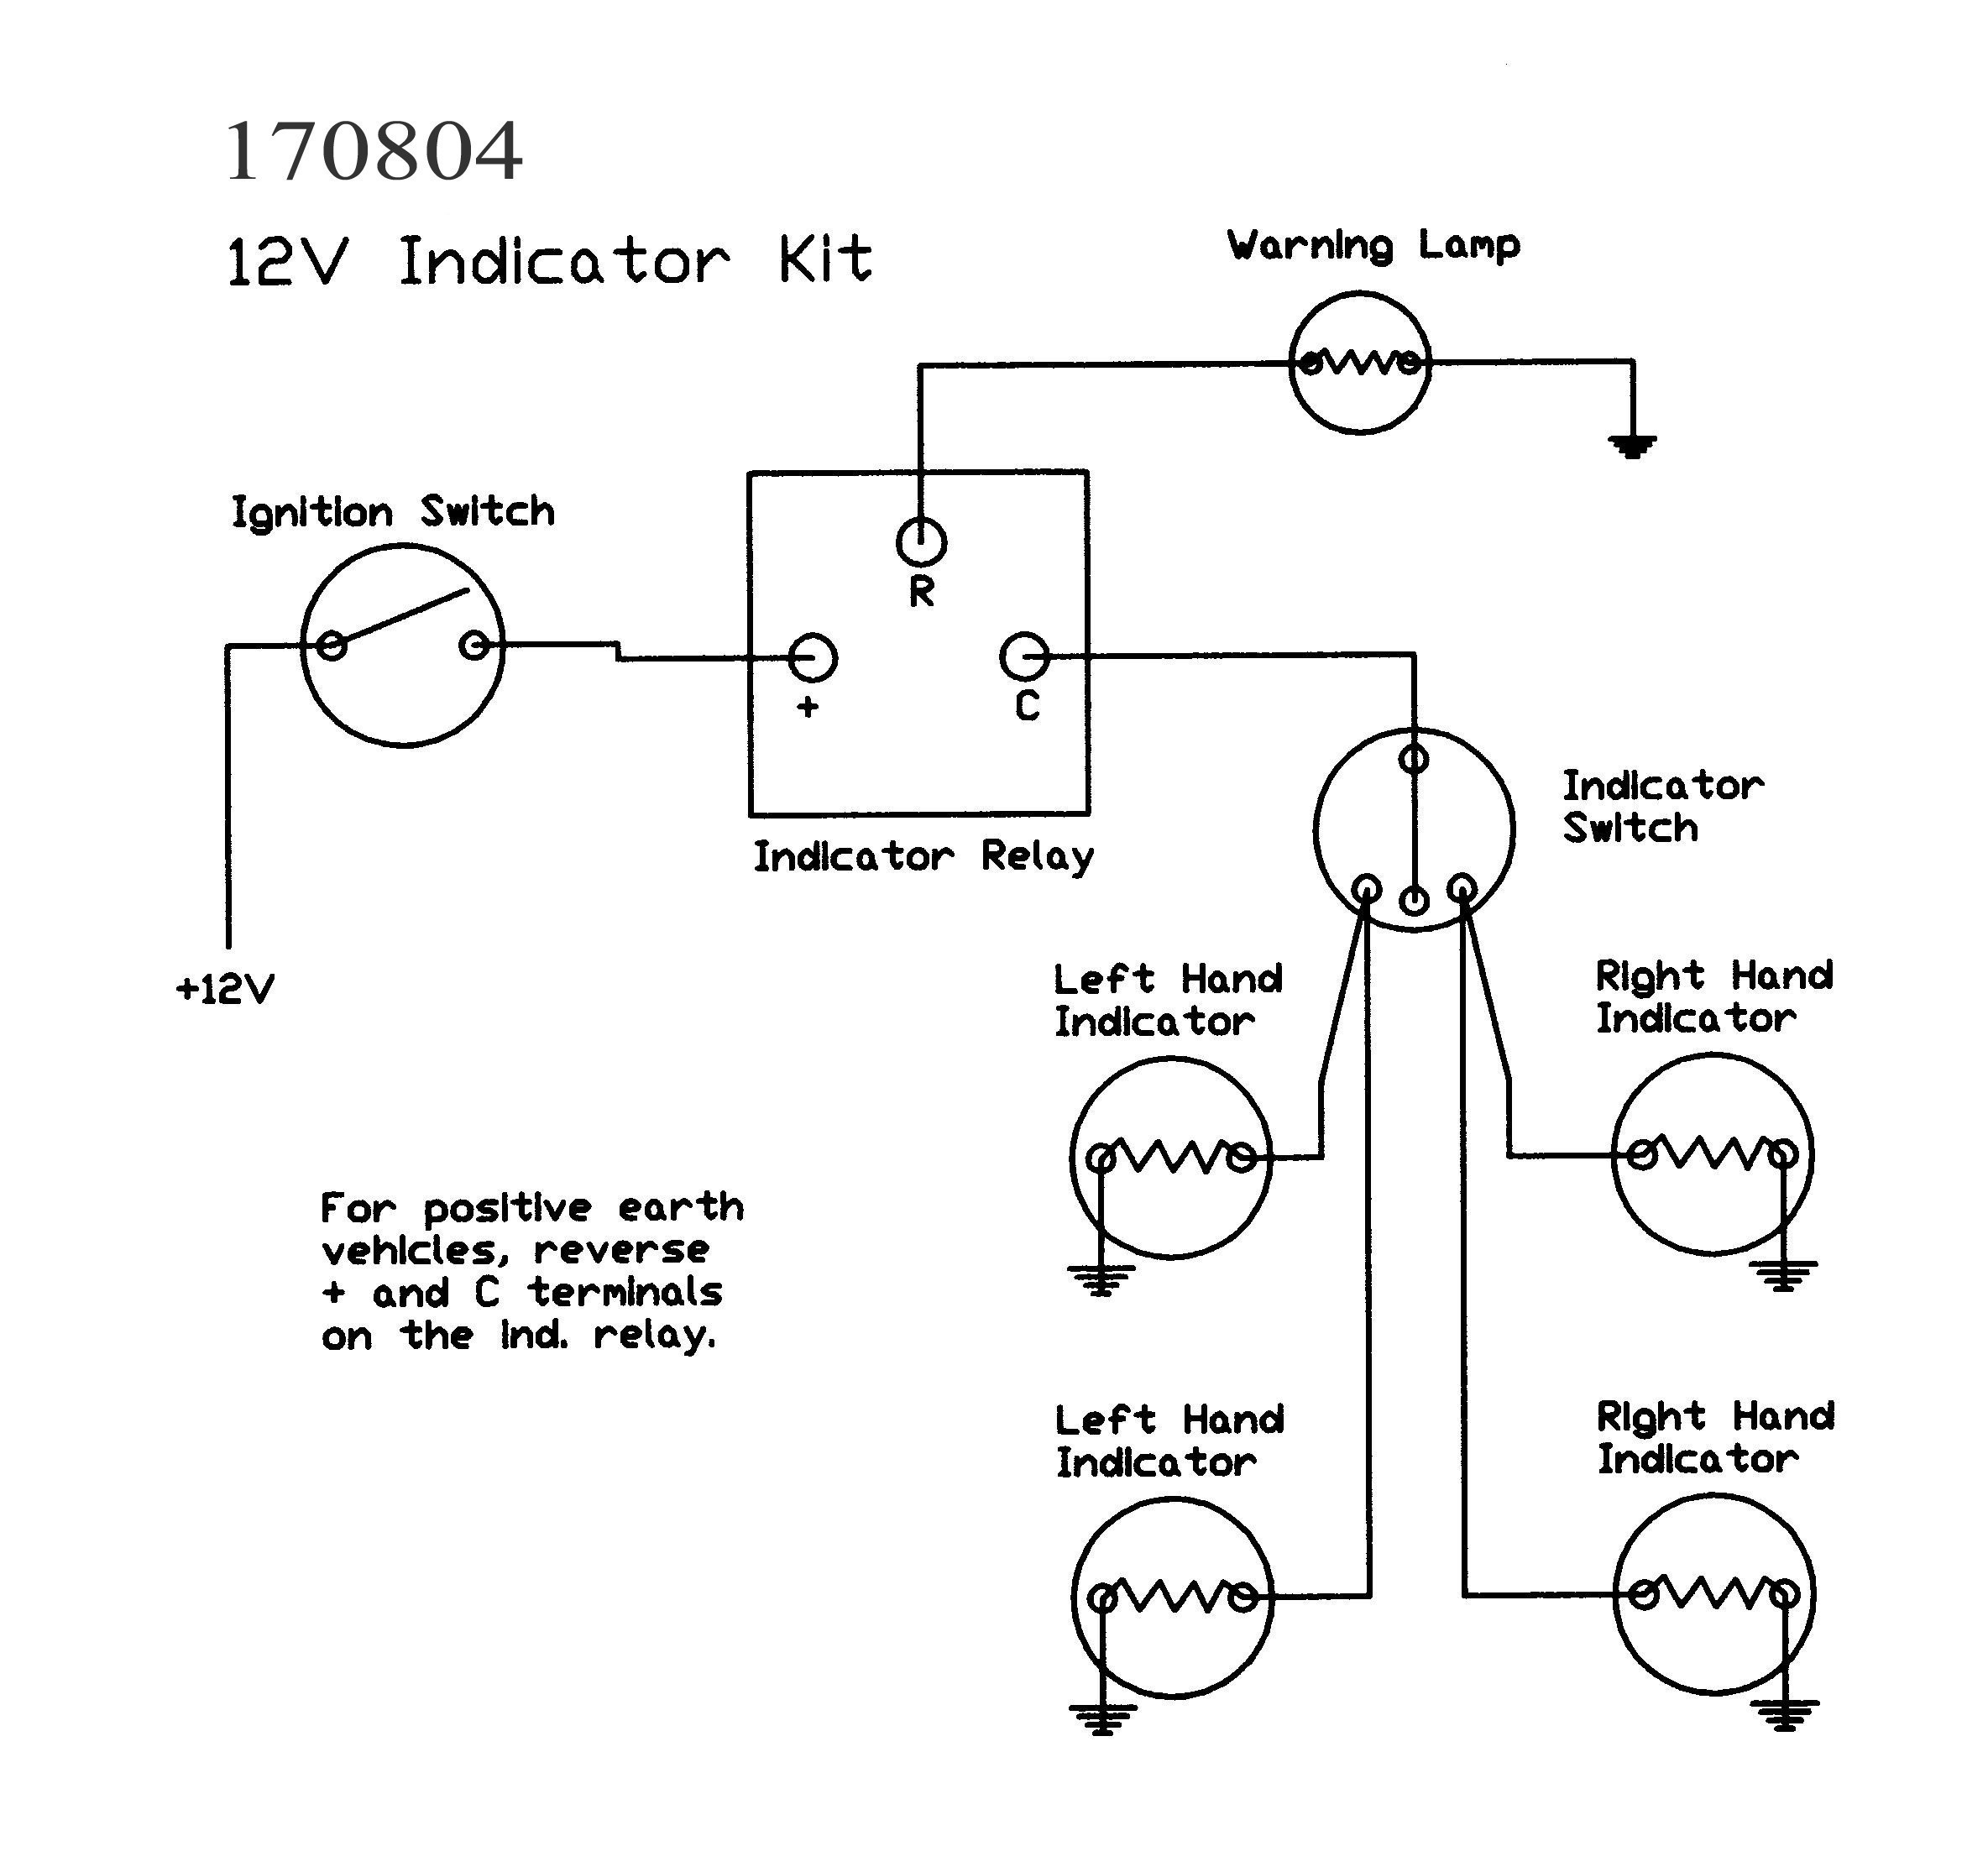 Turn Signal Diagram Used Relay Diagram • Electrical Outlet Symbol 2018 Of Turn Signal Diagram